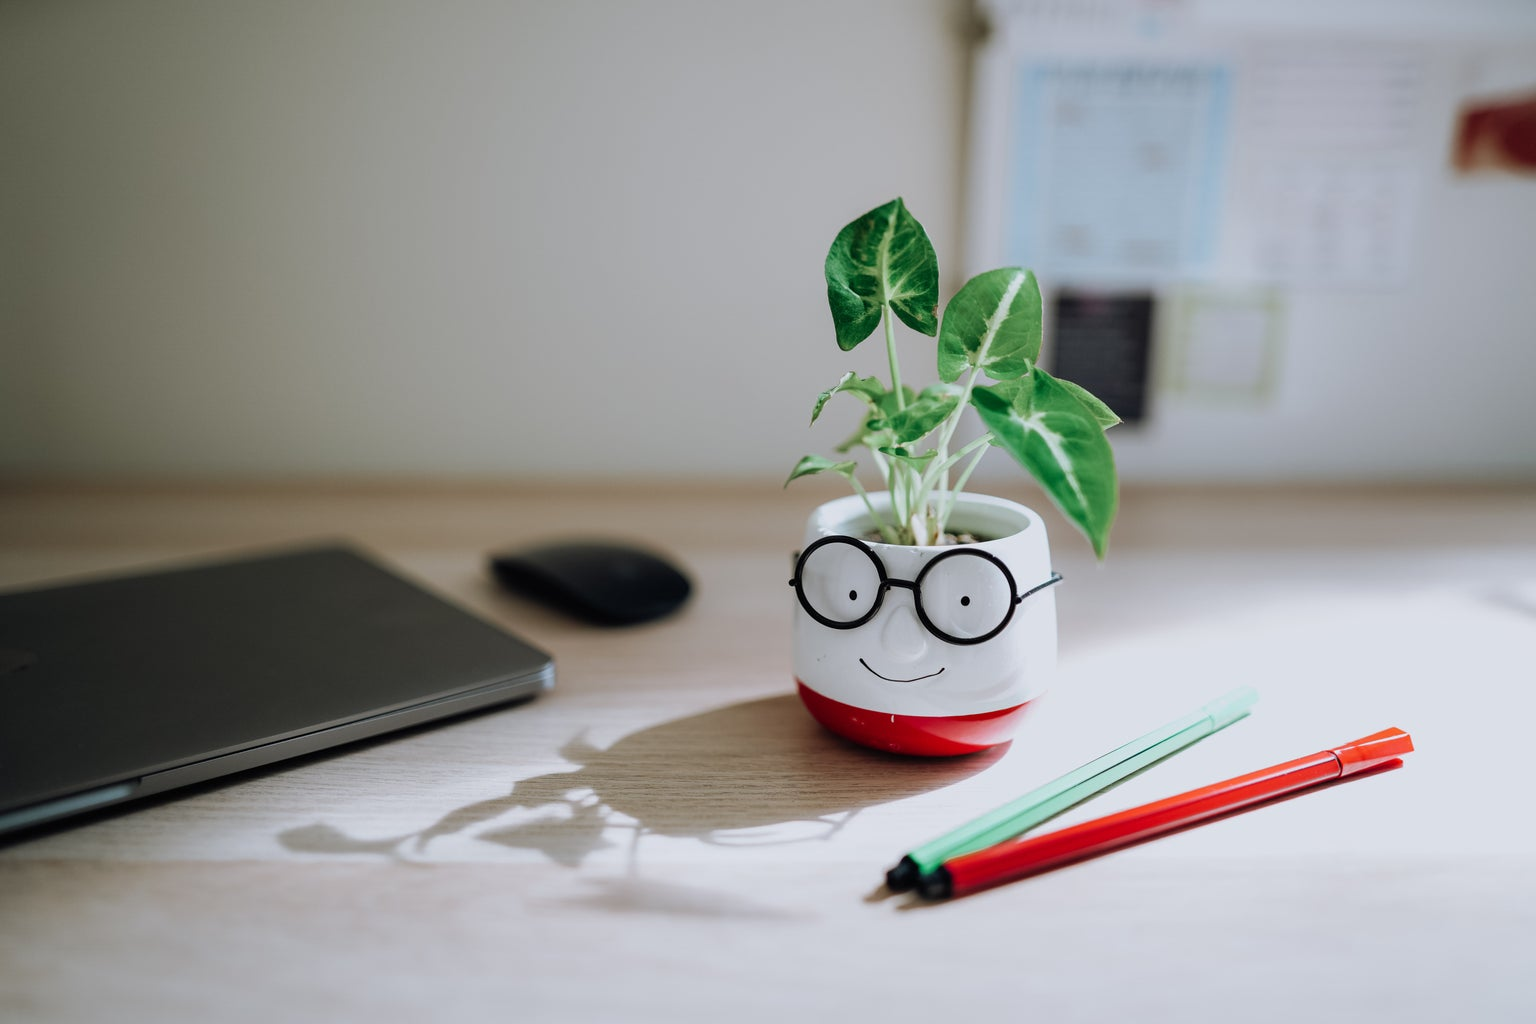 A desk with a laptop, a plant in a small pot and coloured pens.